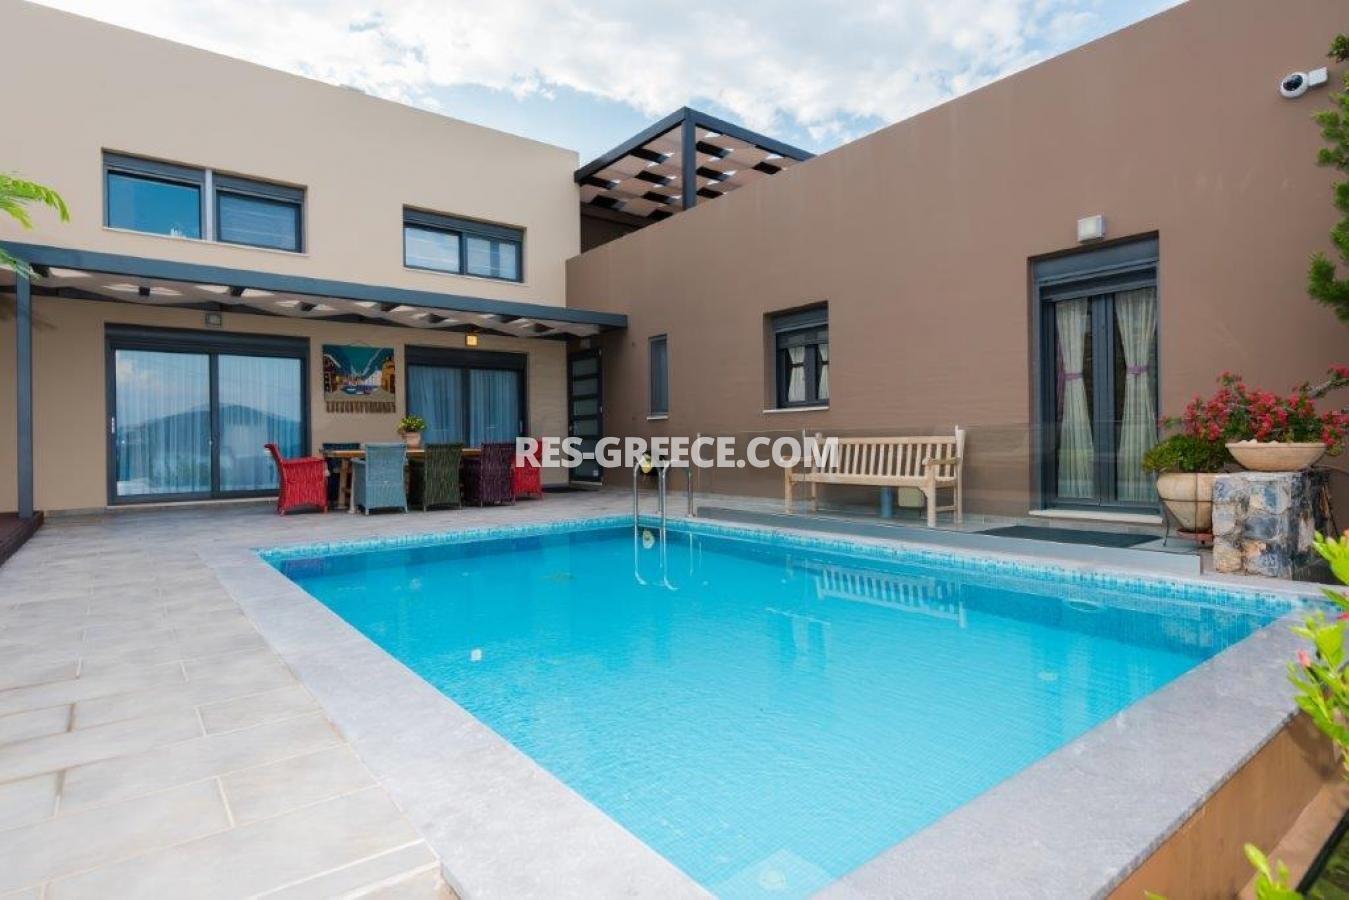 Aura Blue, Crete, Greece - villa with pool for sale in the best spot in Crete, in Elounda - Photo 32